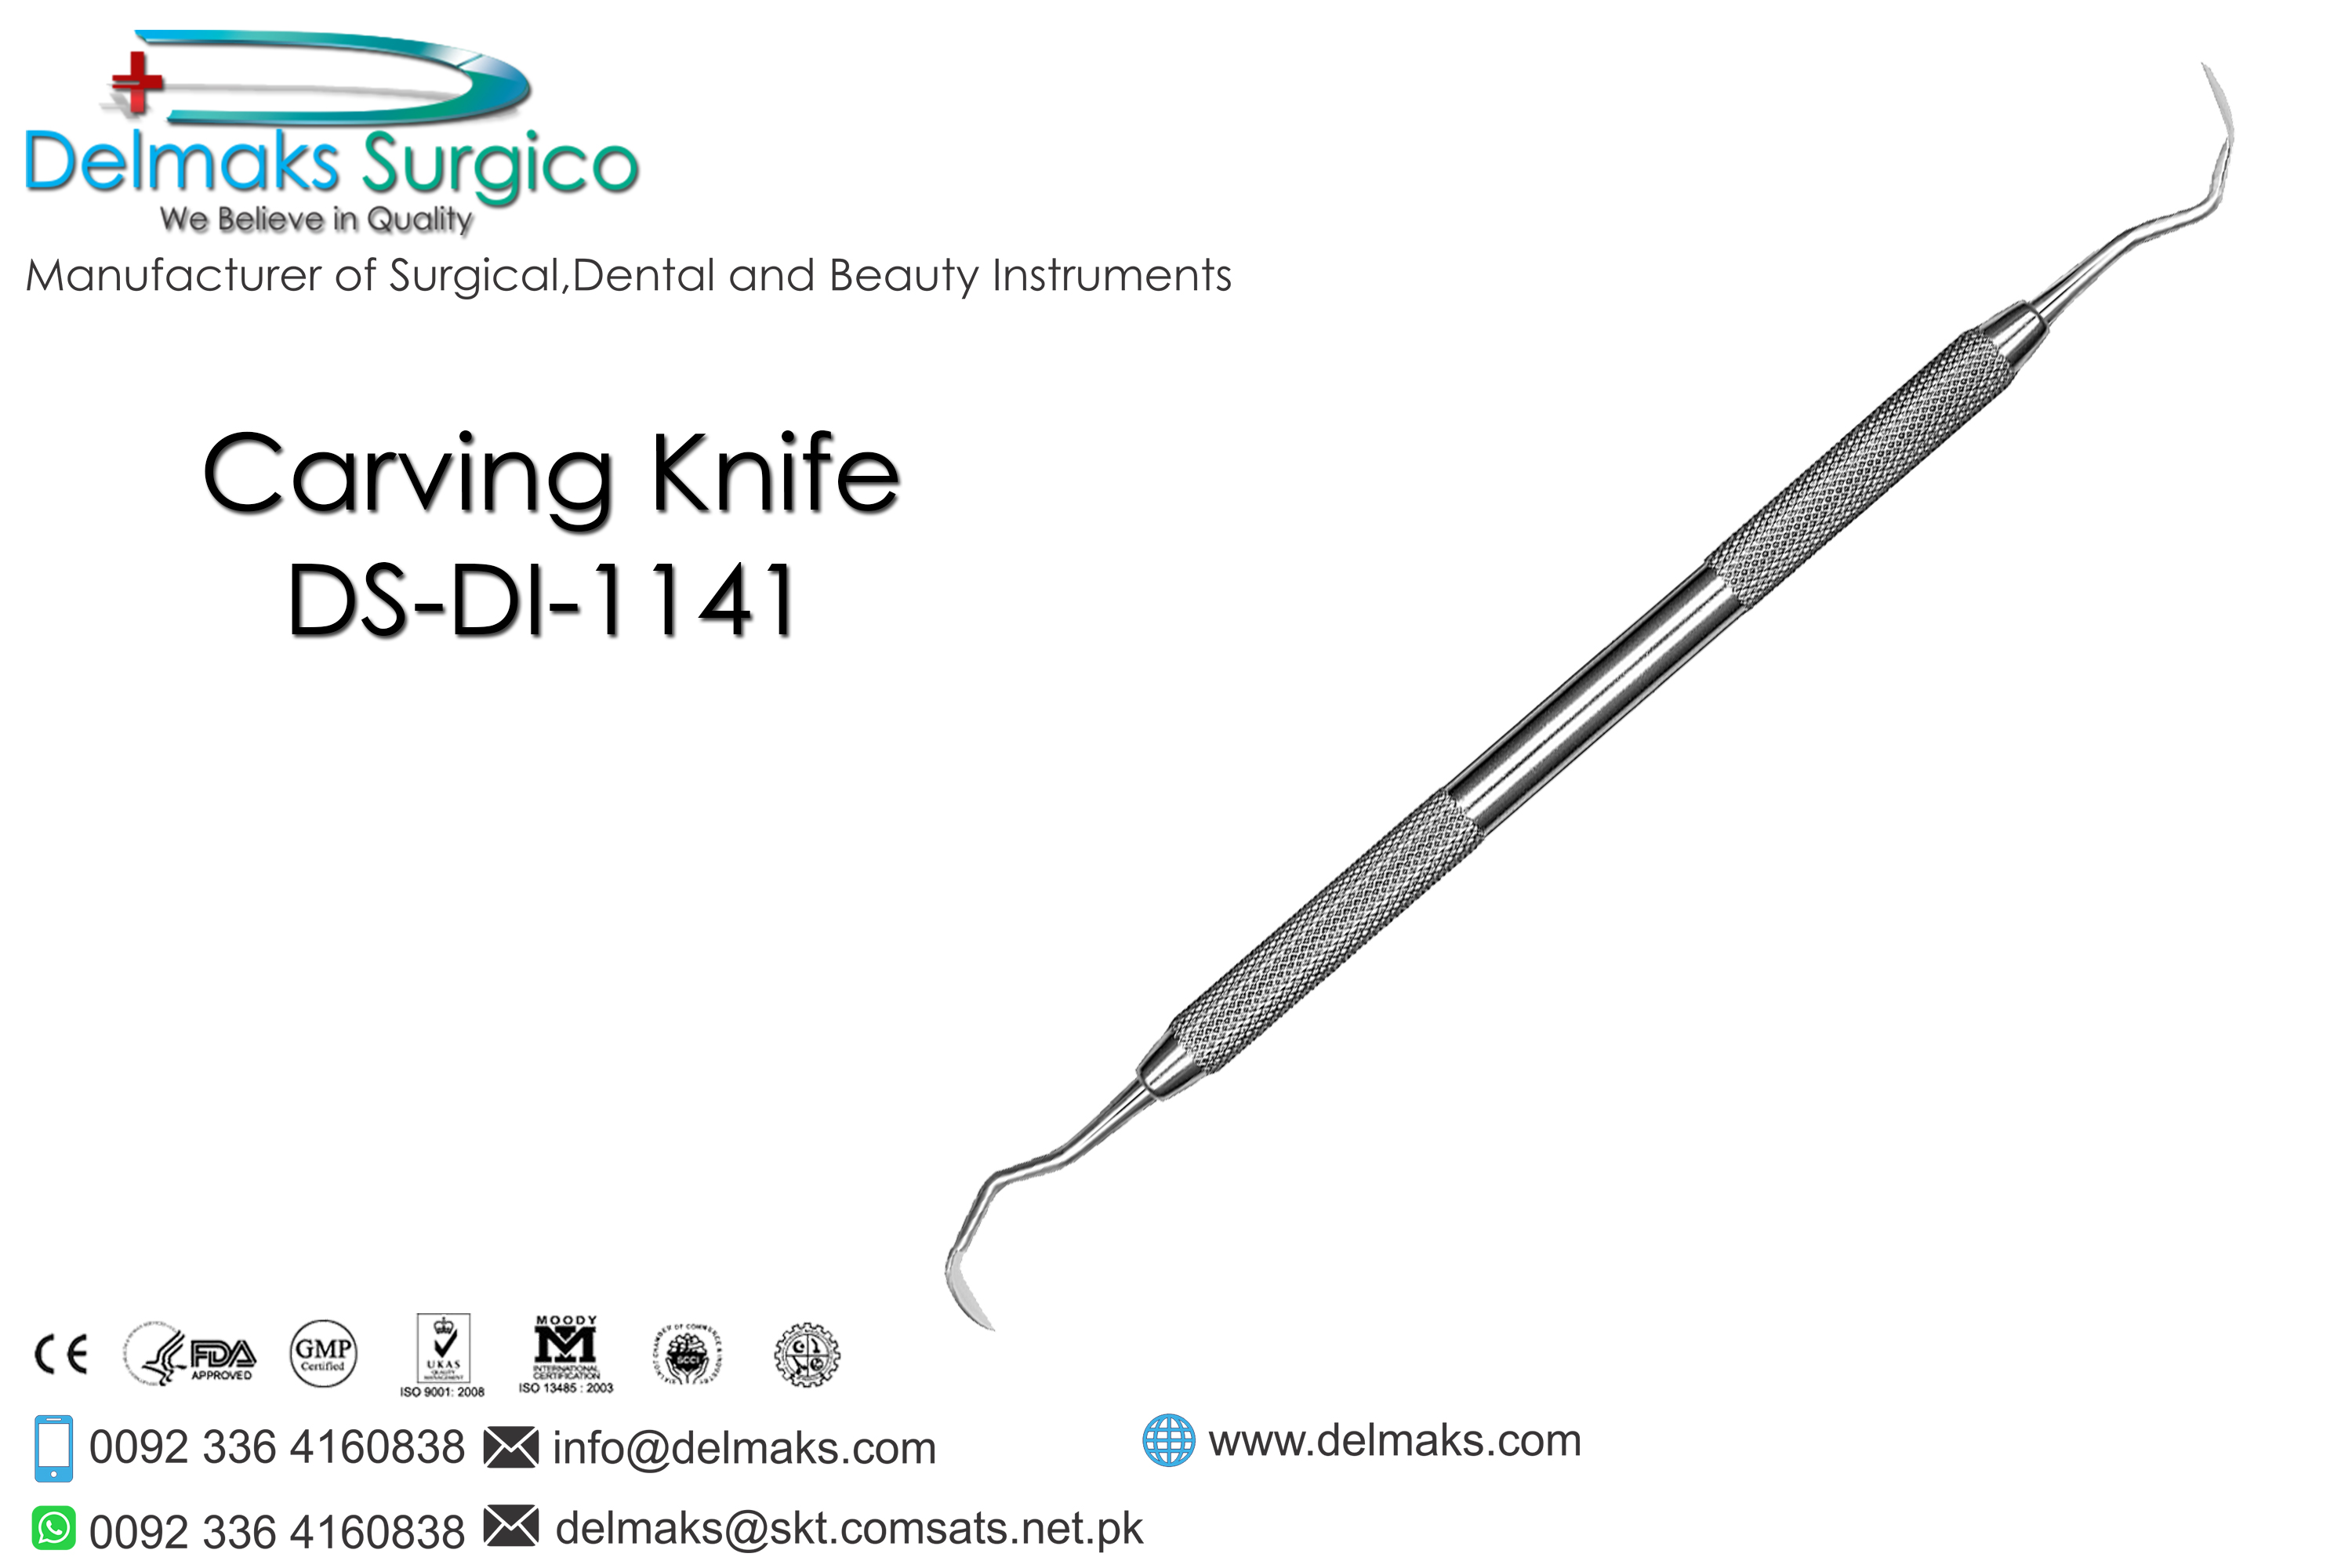 Carving Knife-Restorative Instruments-Dental Instruments-Delmaks Surgico